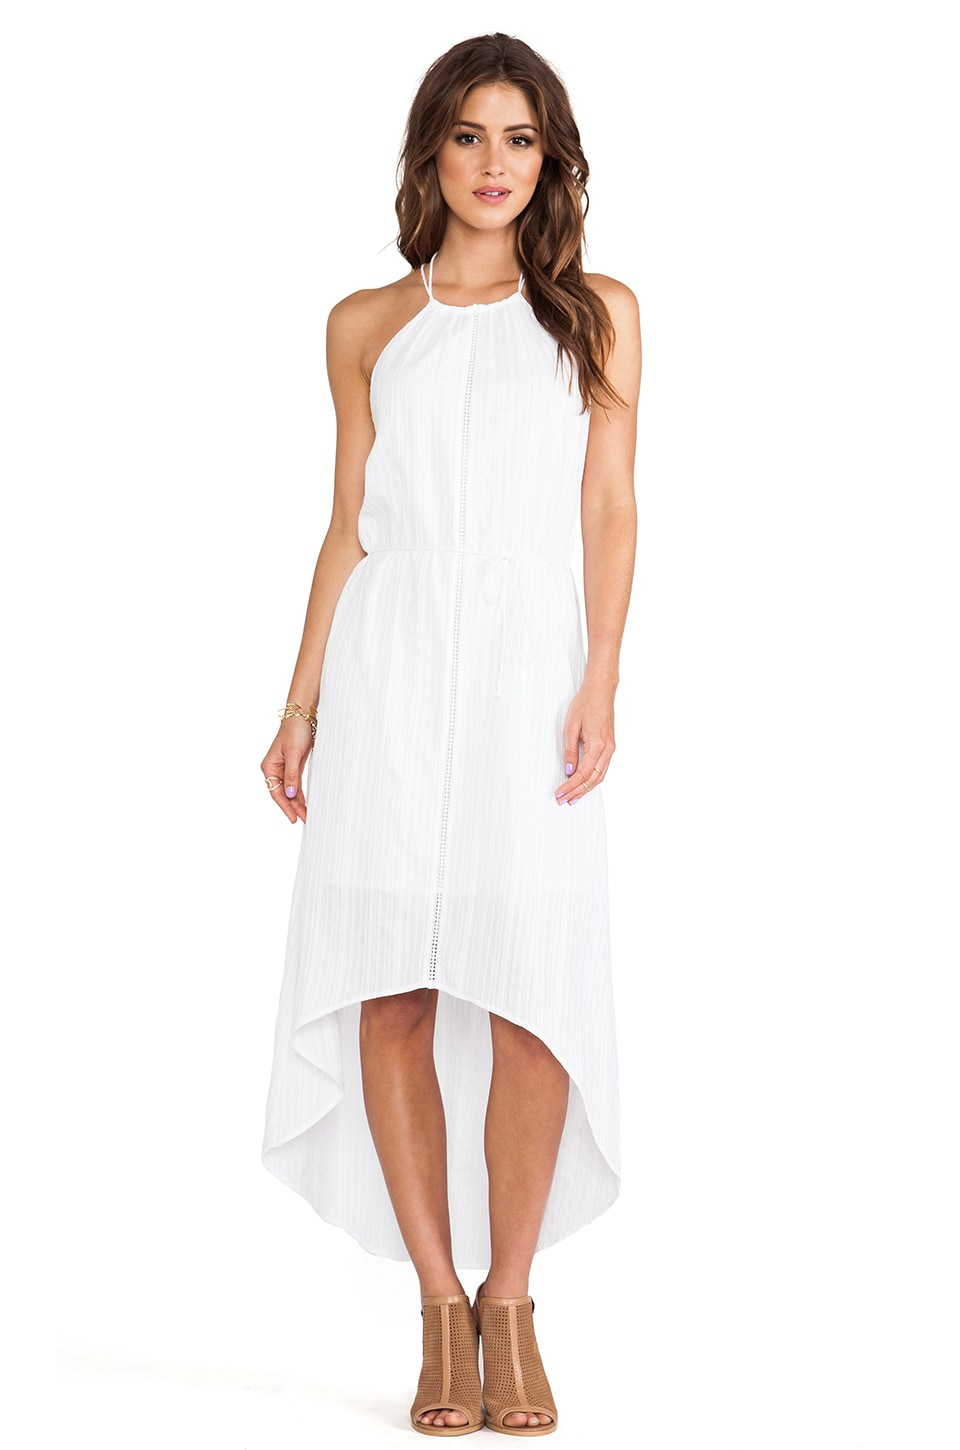 C&C California Asymmetric Hem Halter Dress in White